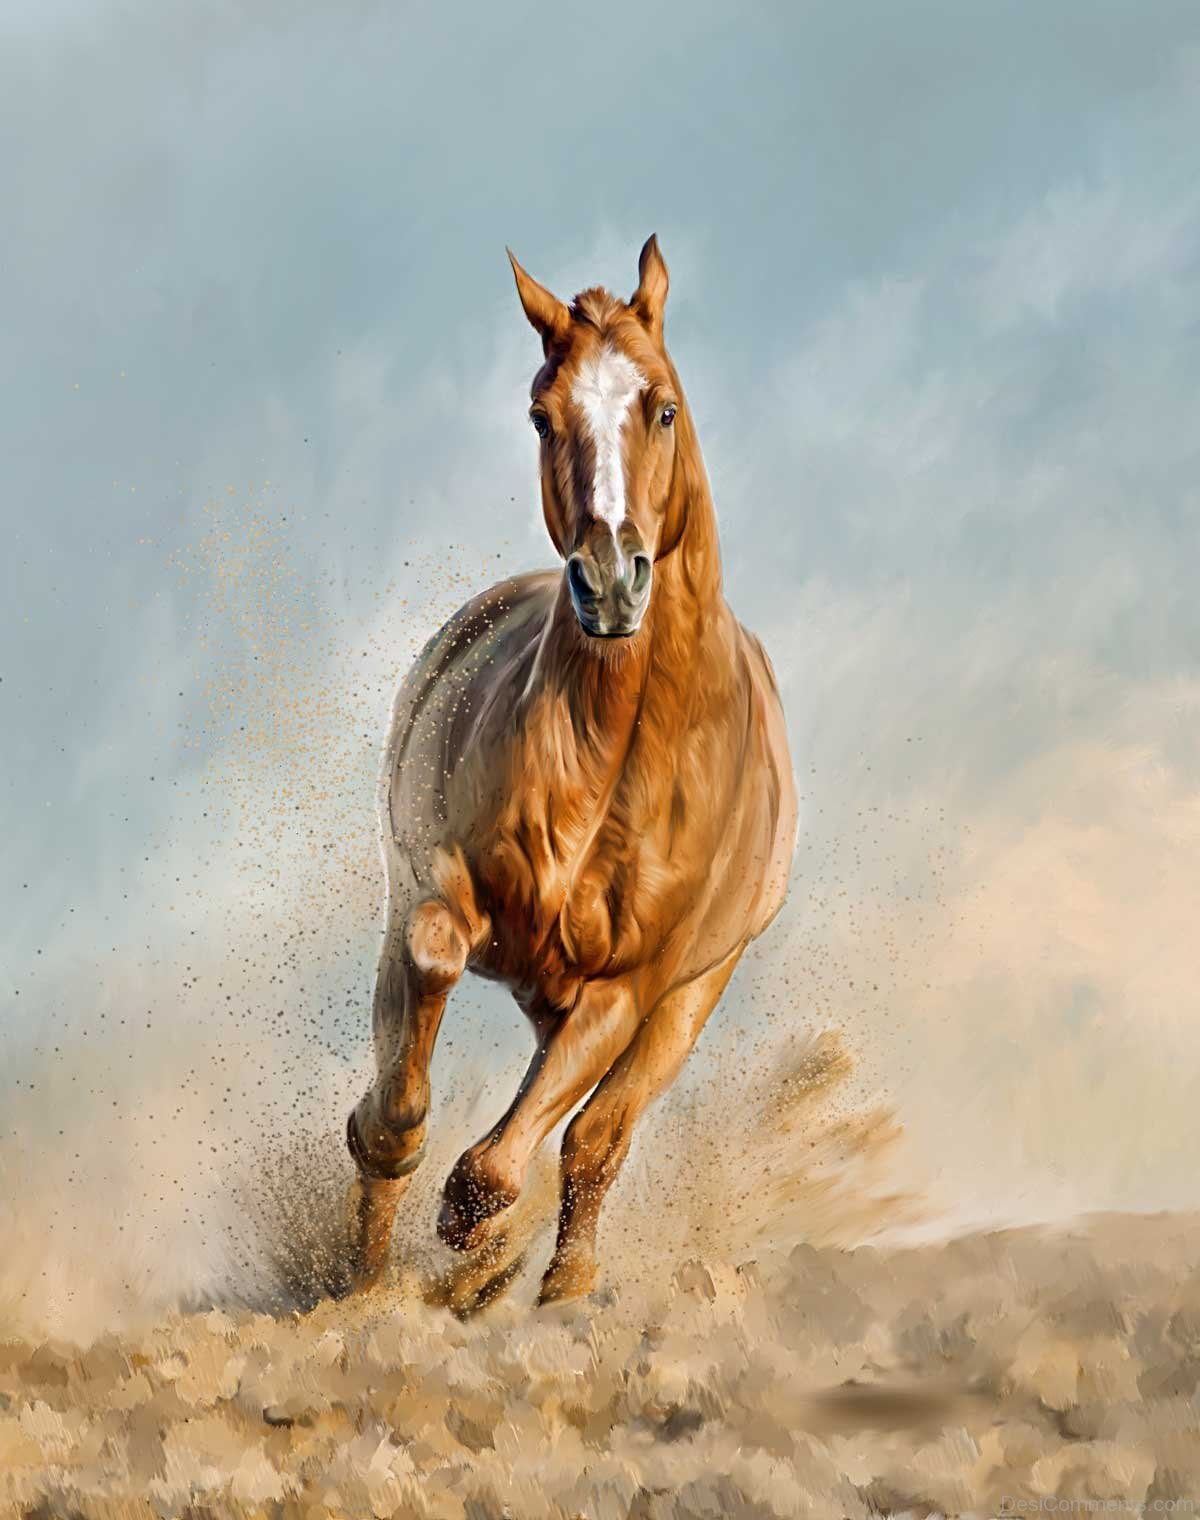 Painting Chestnut Horse Running Desicomments Com